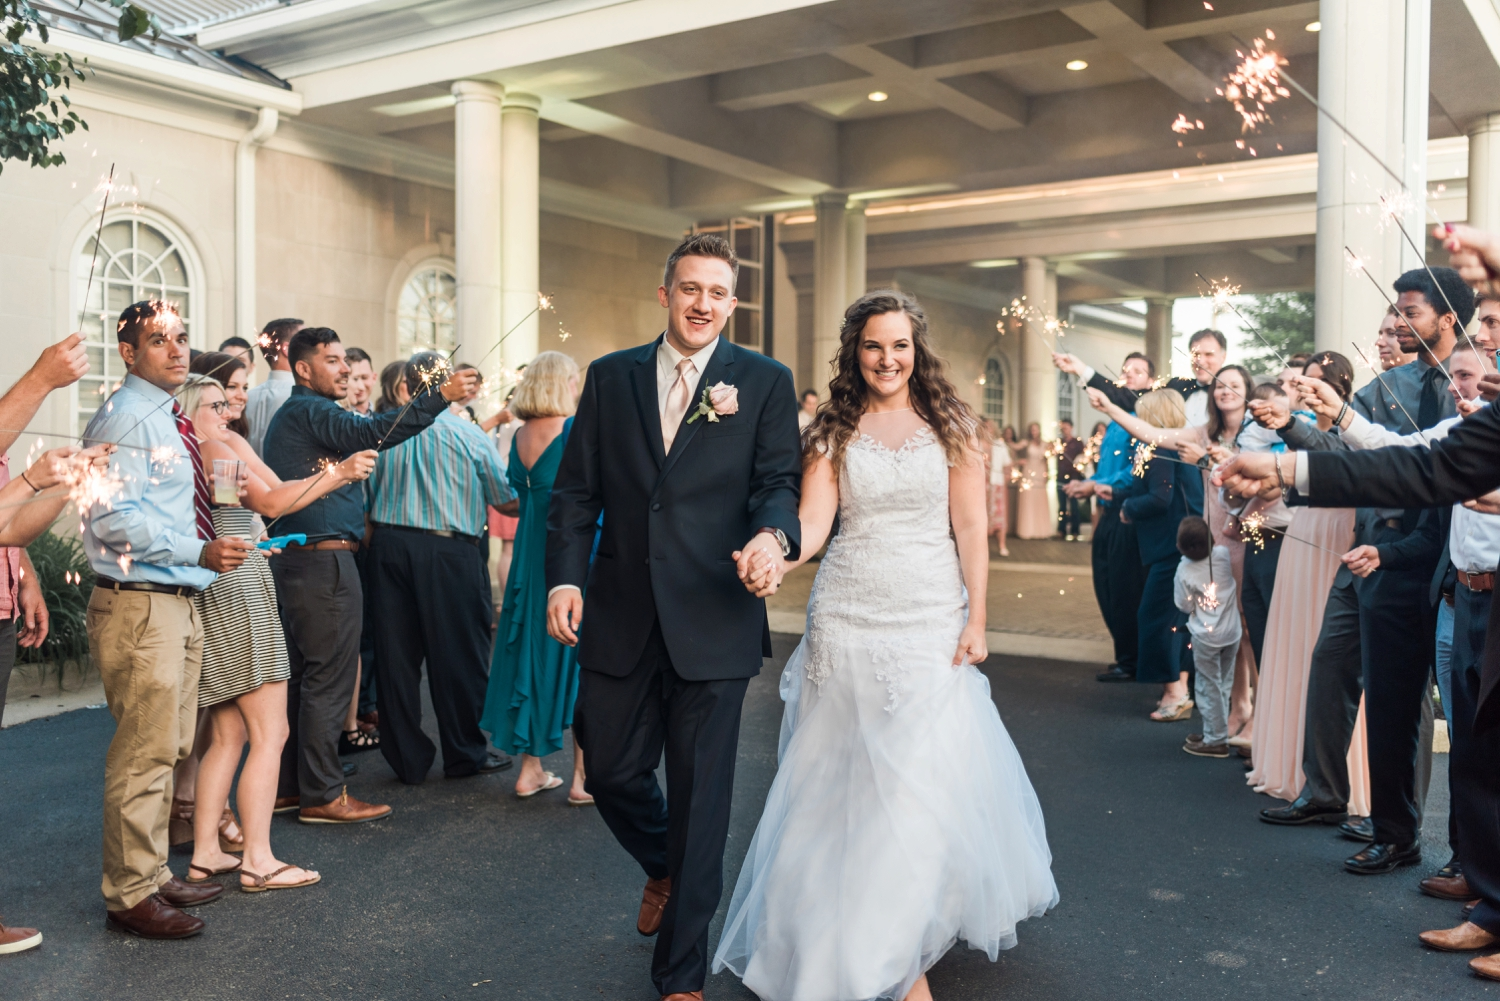 Community_Life_Center_Indianapolis_Indiana_Wedding_Photographer_Chloe_Luka_Photography_7001.jpg